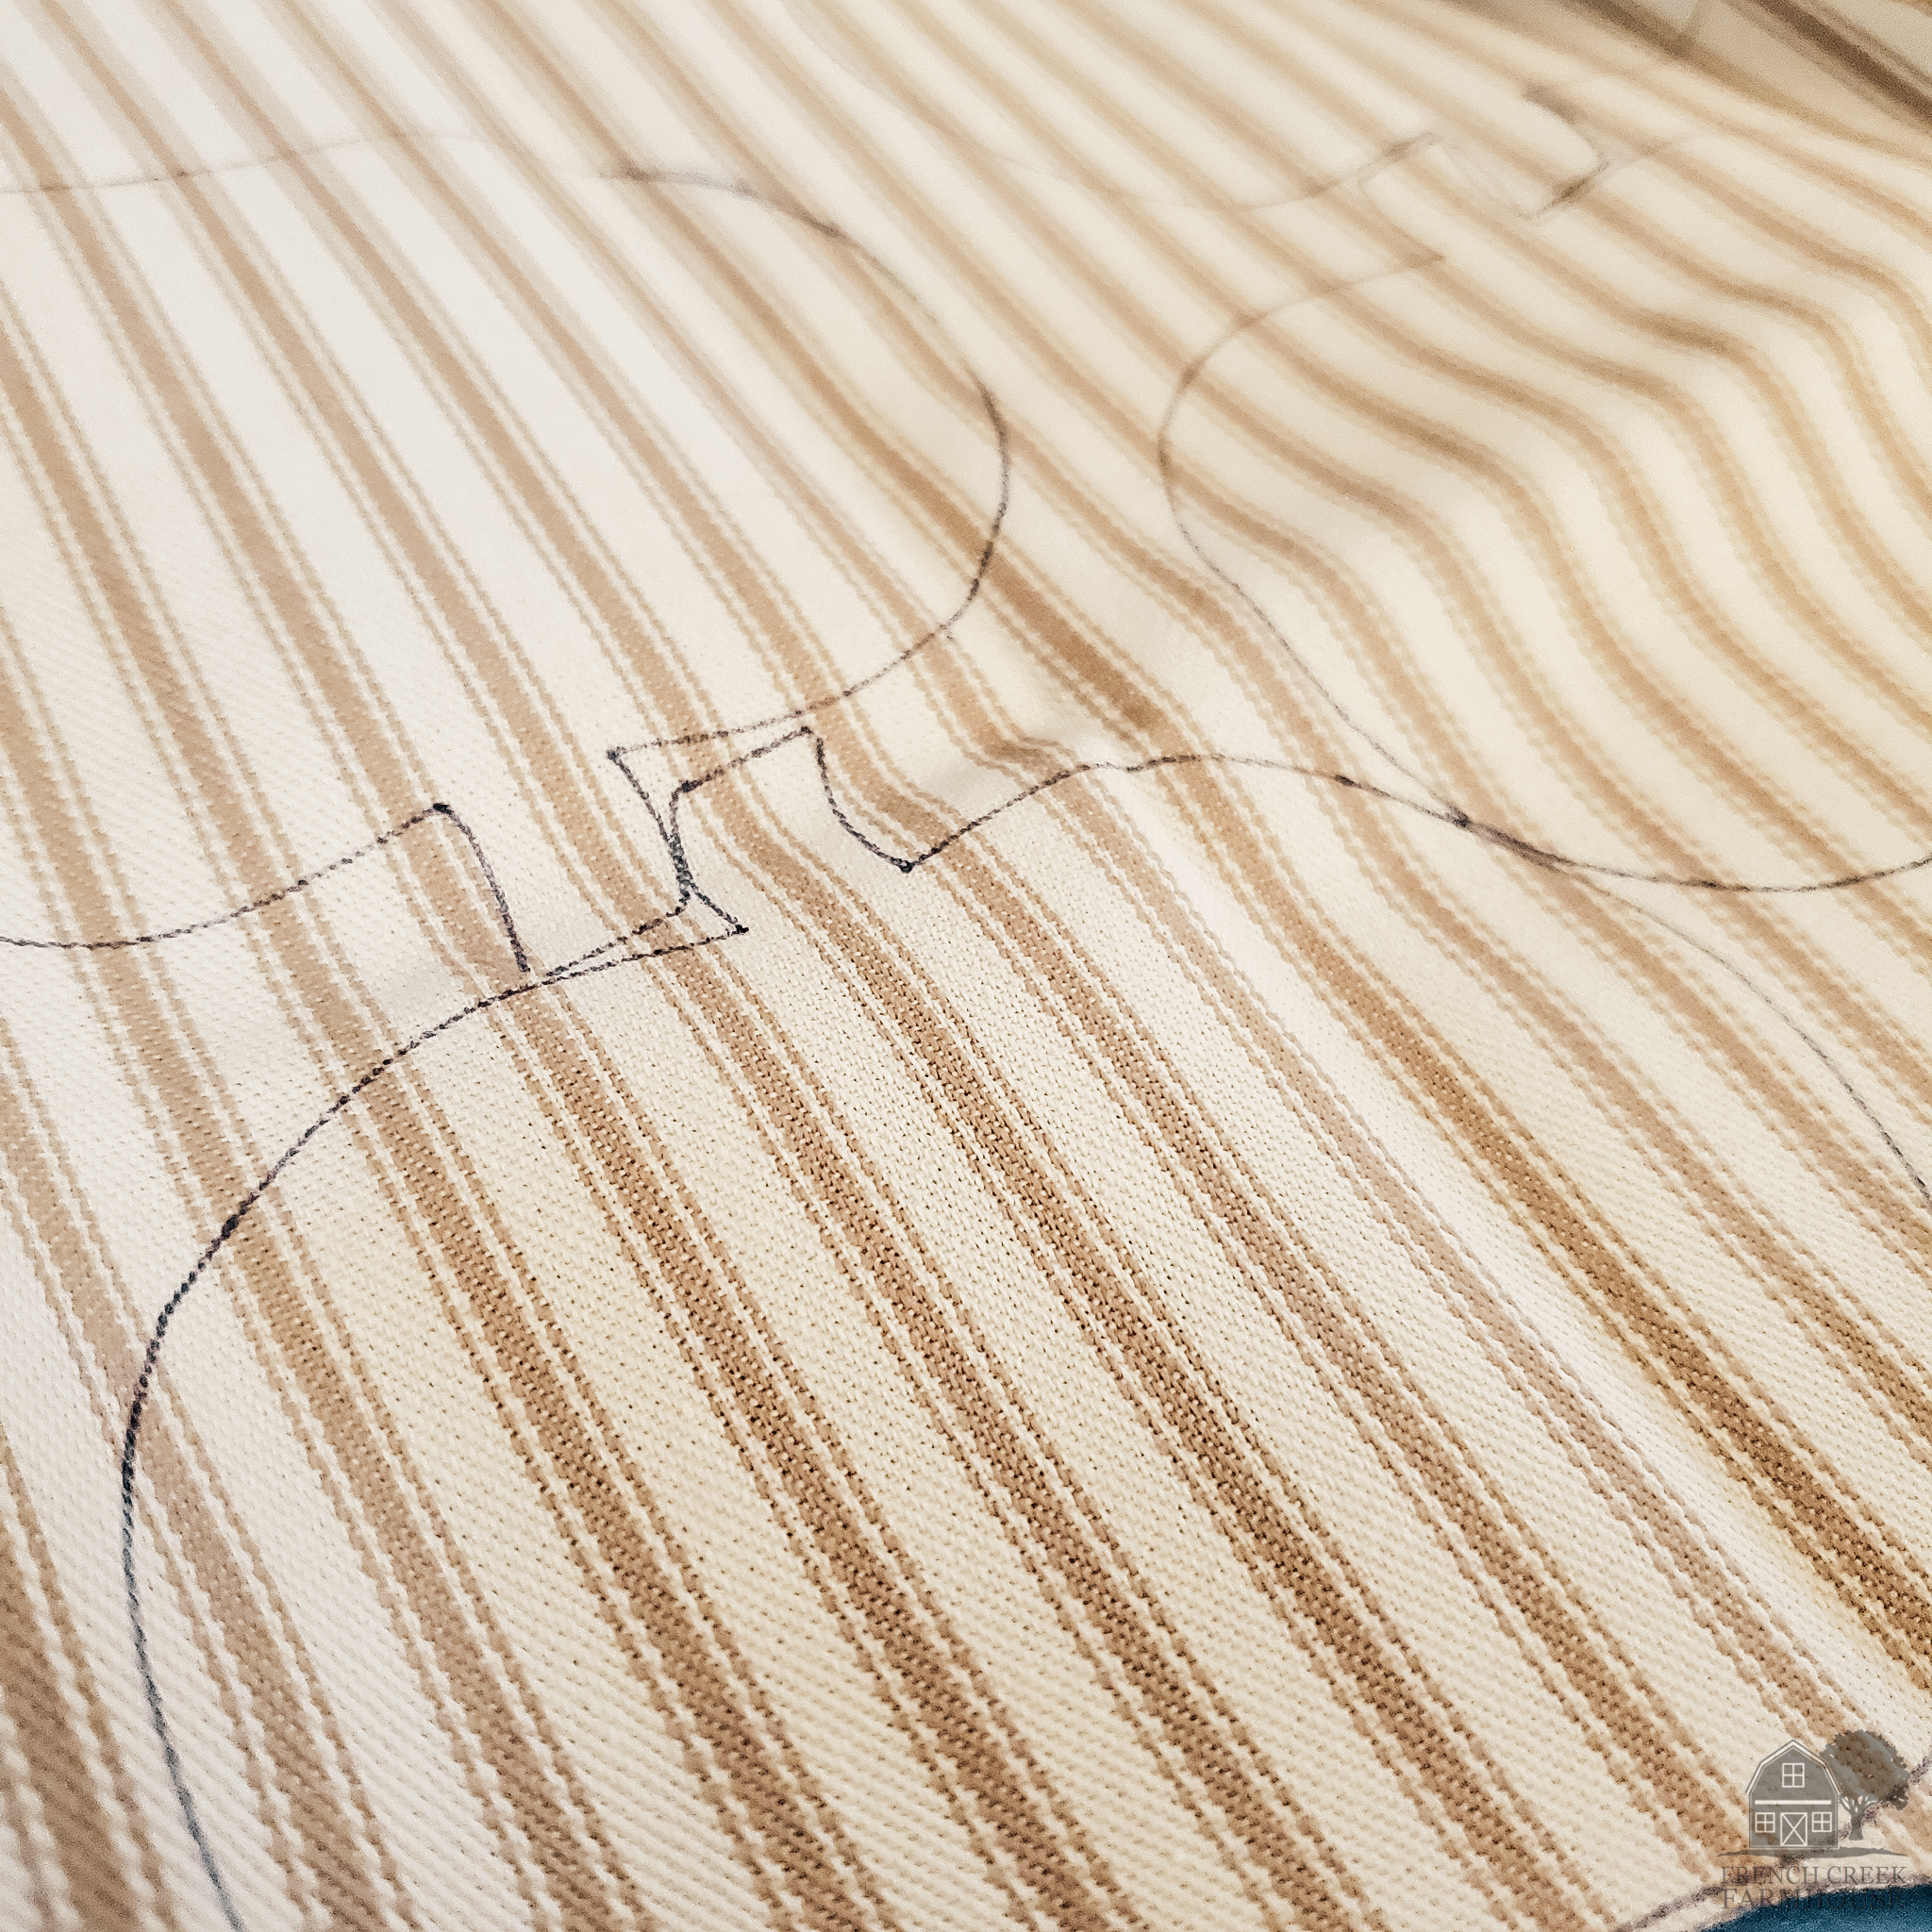 The pumpkin shapes are traced onto the fabric to cut out